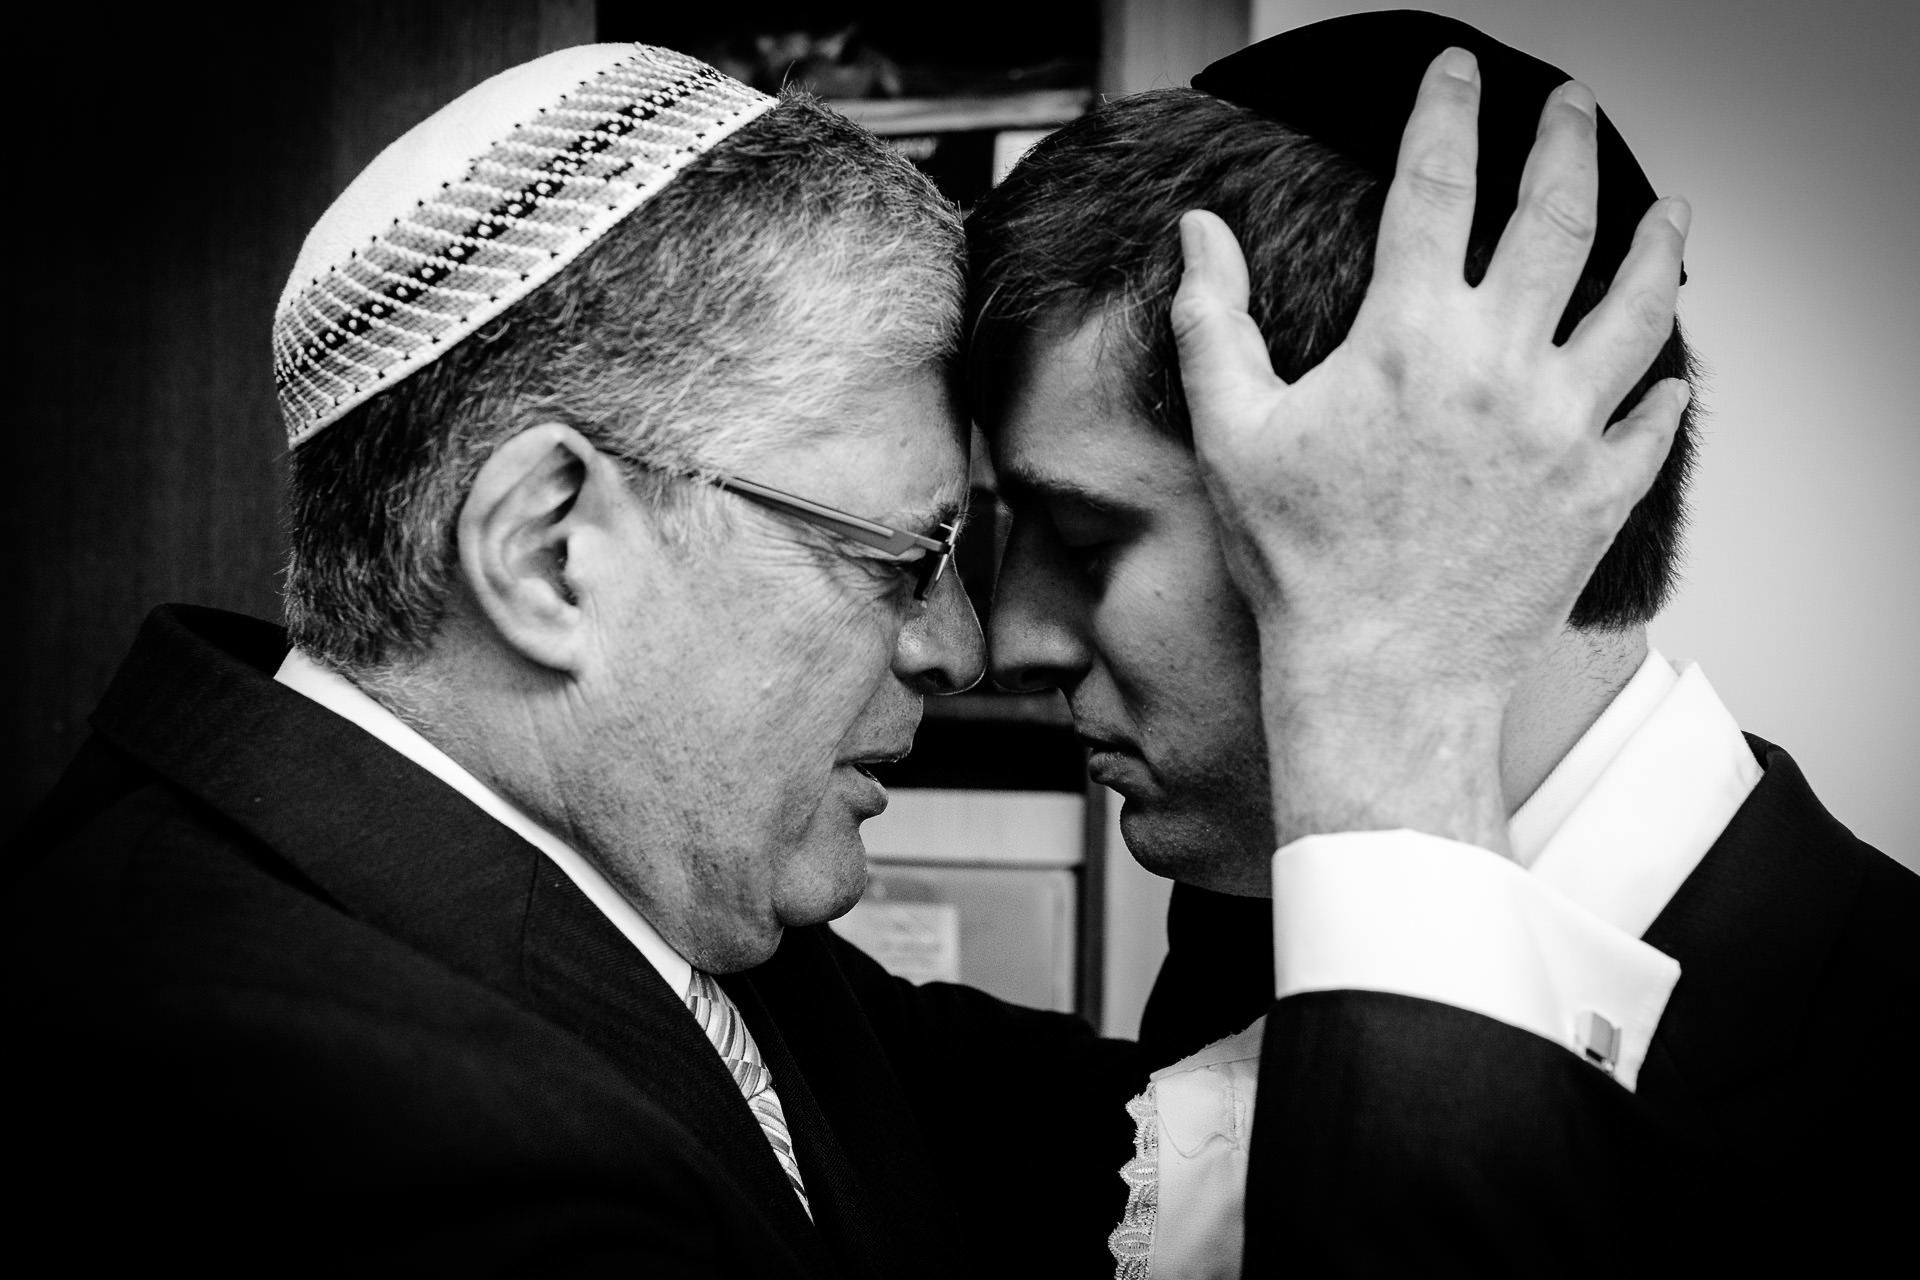 Orthodox-Jewish-Wedding-Photography-London-Sharon-Yoni-016